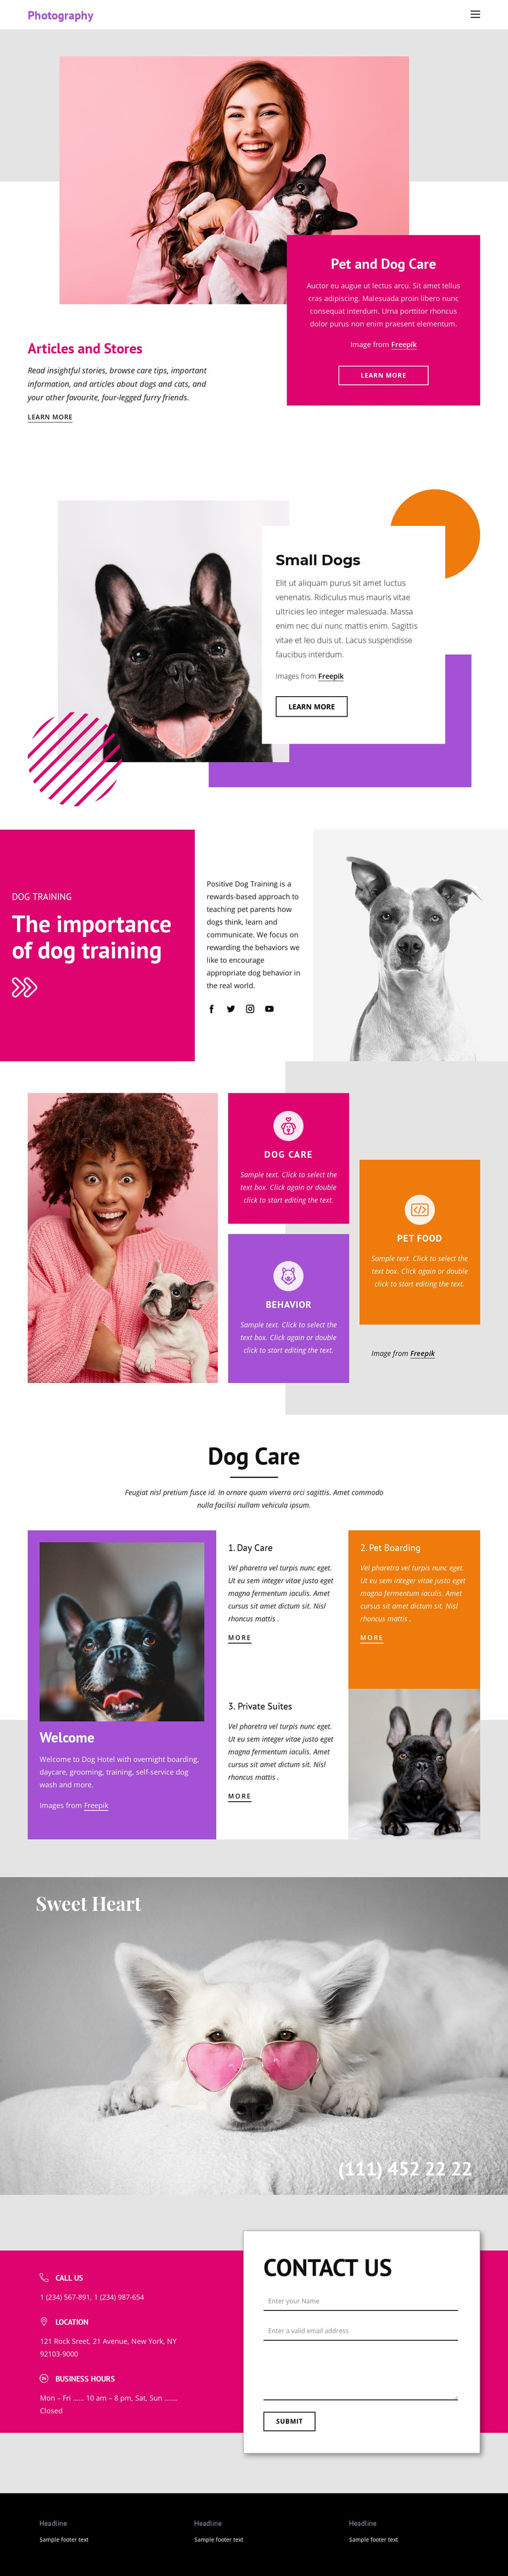 Pets Stories Website Template